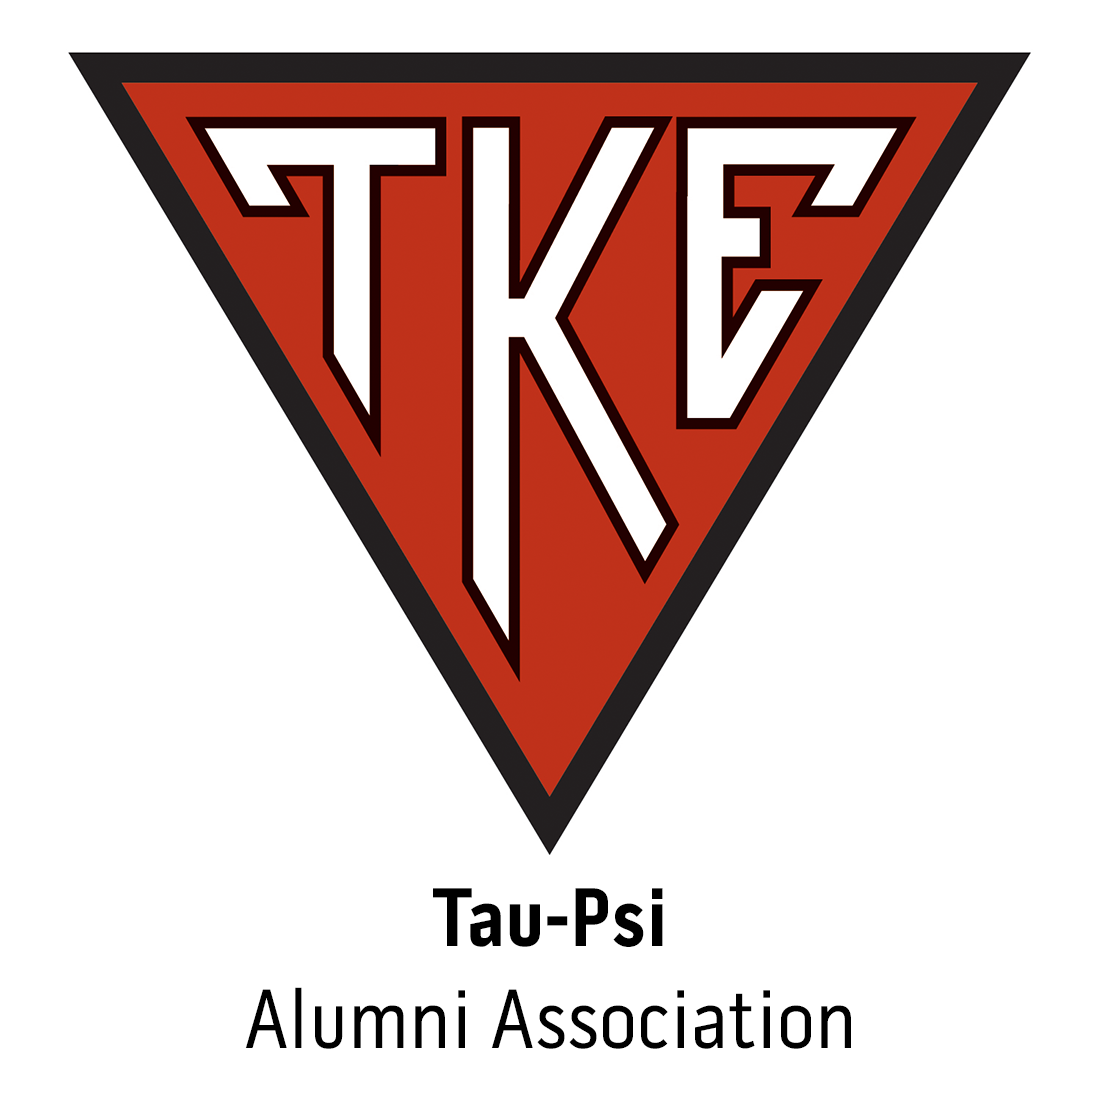 Tau-Psi Alumni Association at University of West Florida